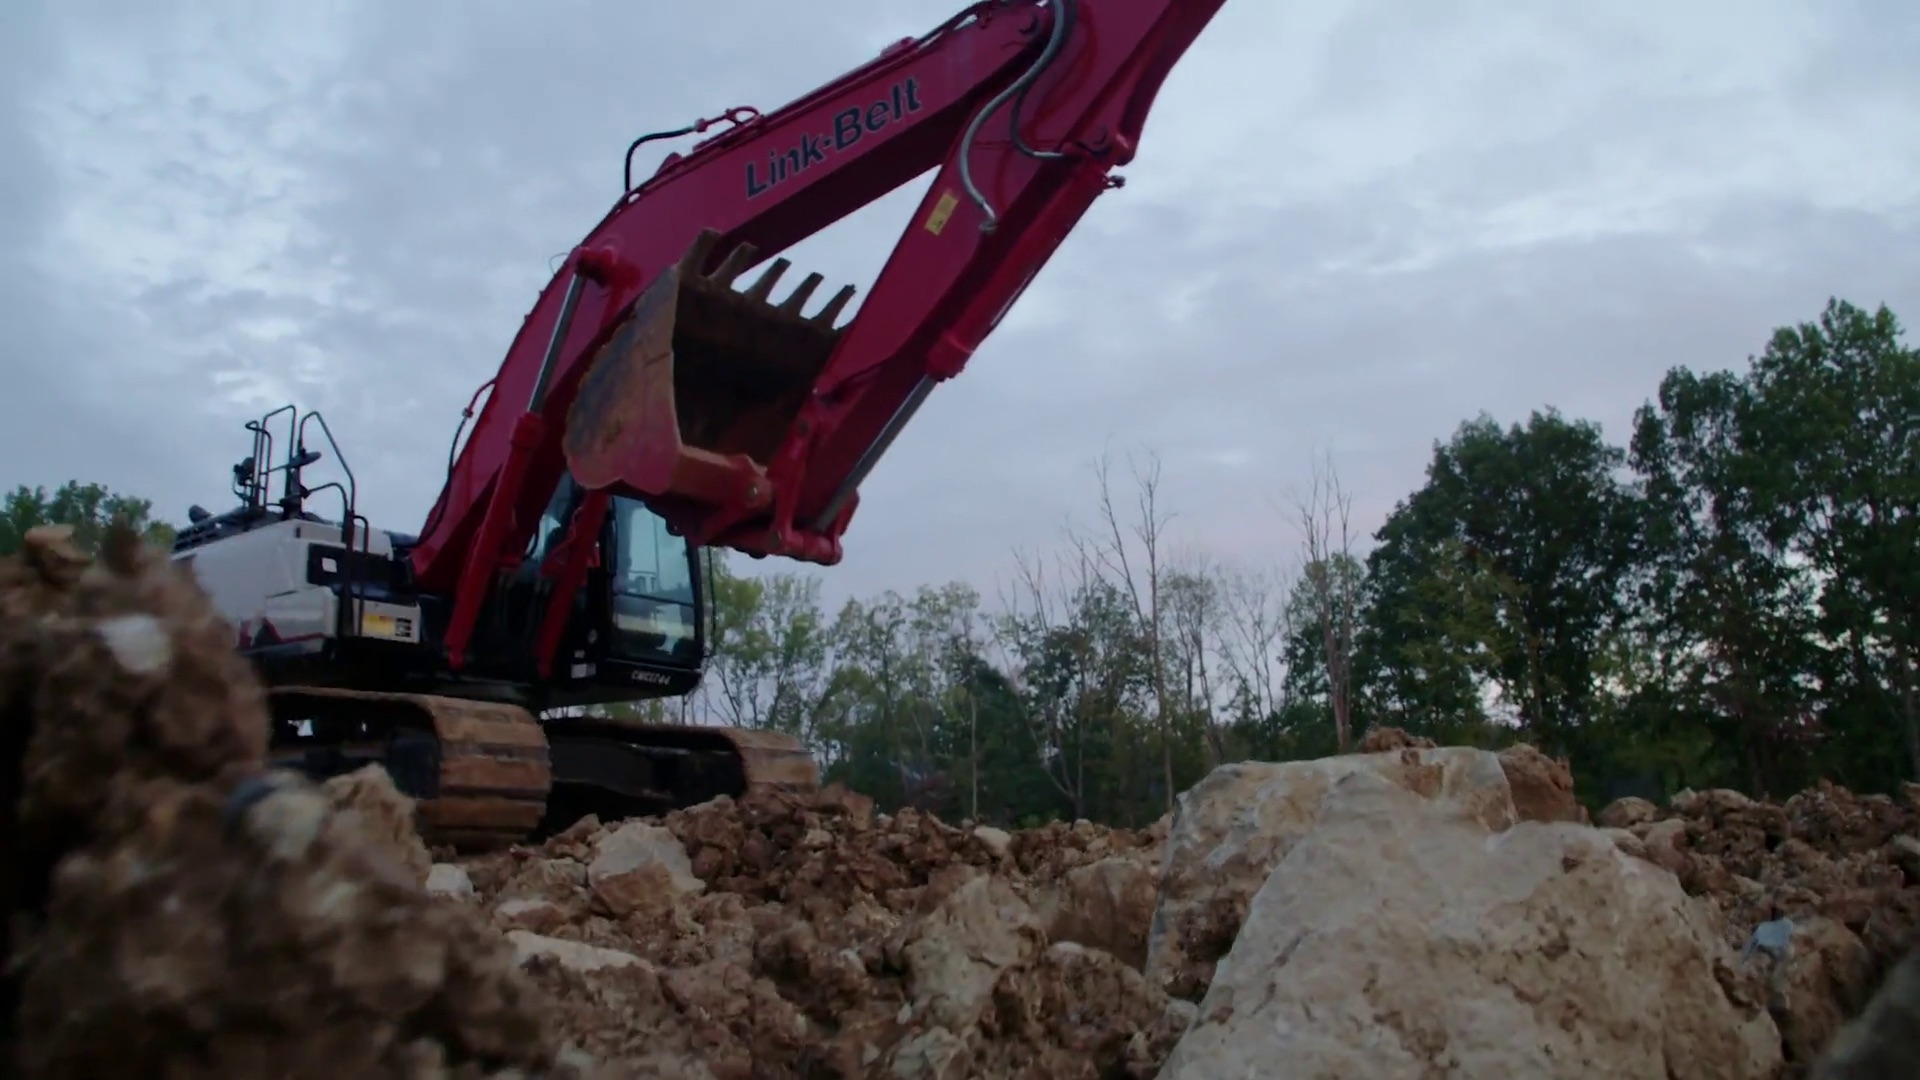 Link-Belt Excavators – Maker of Link-Belt excavators, forestry